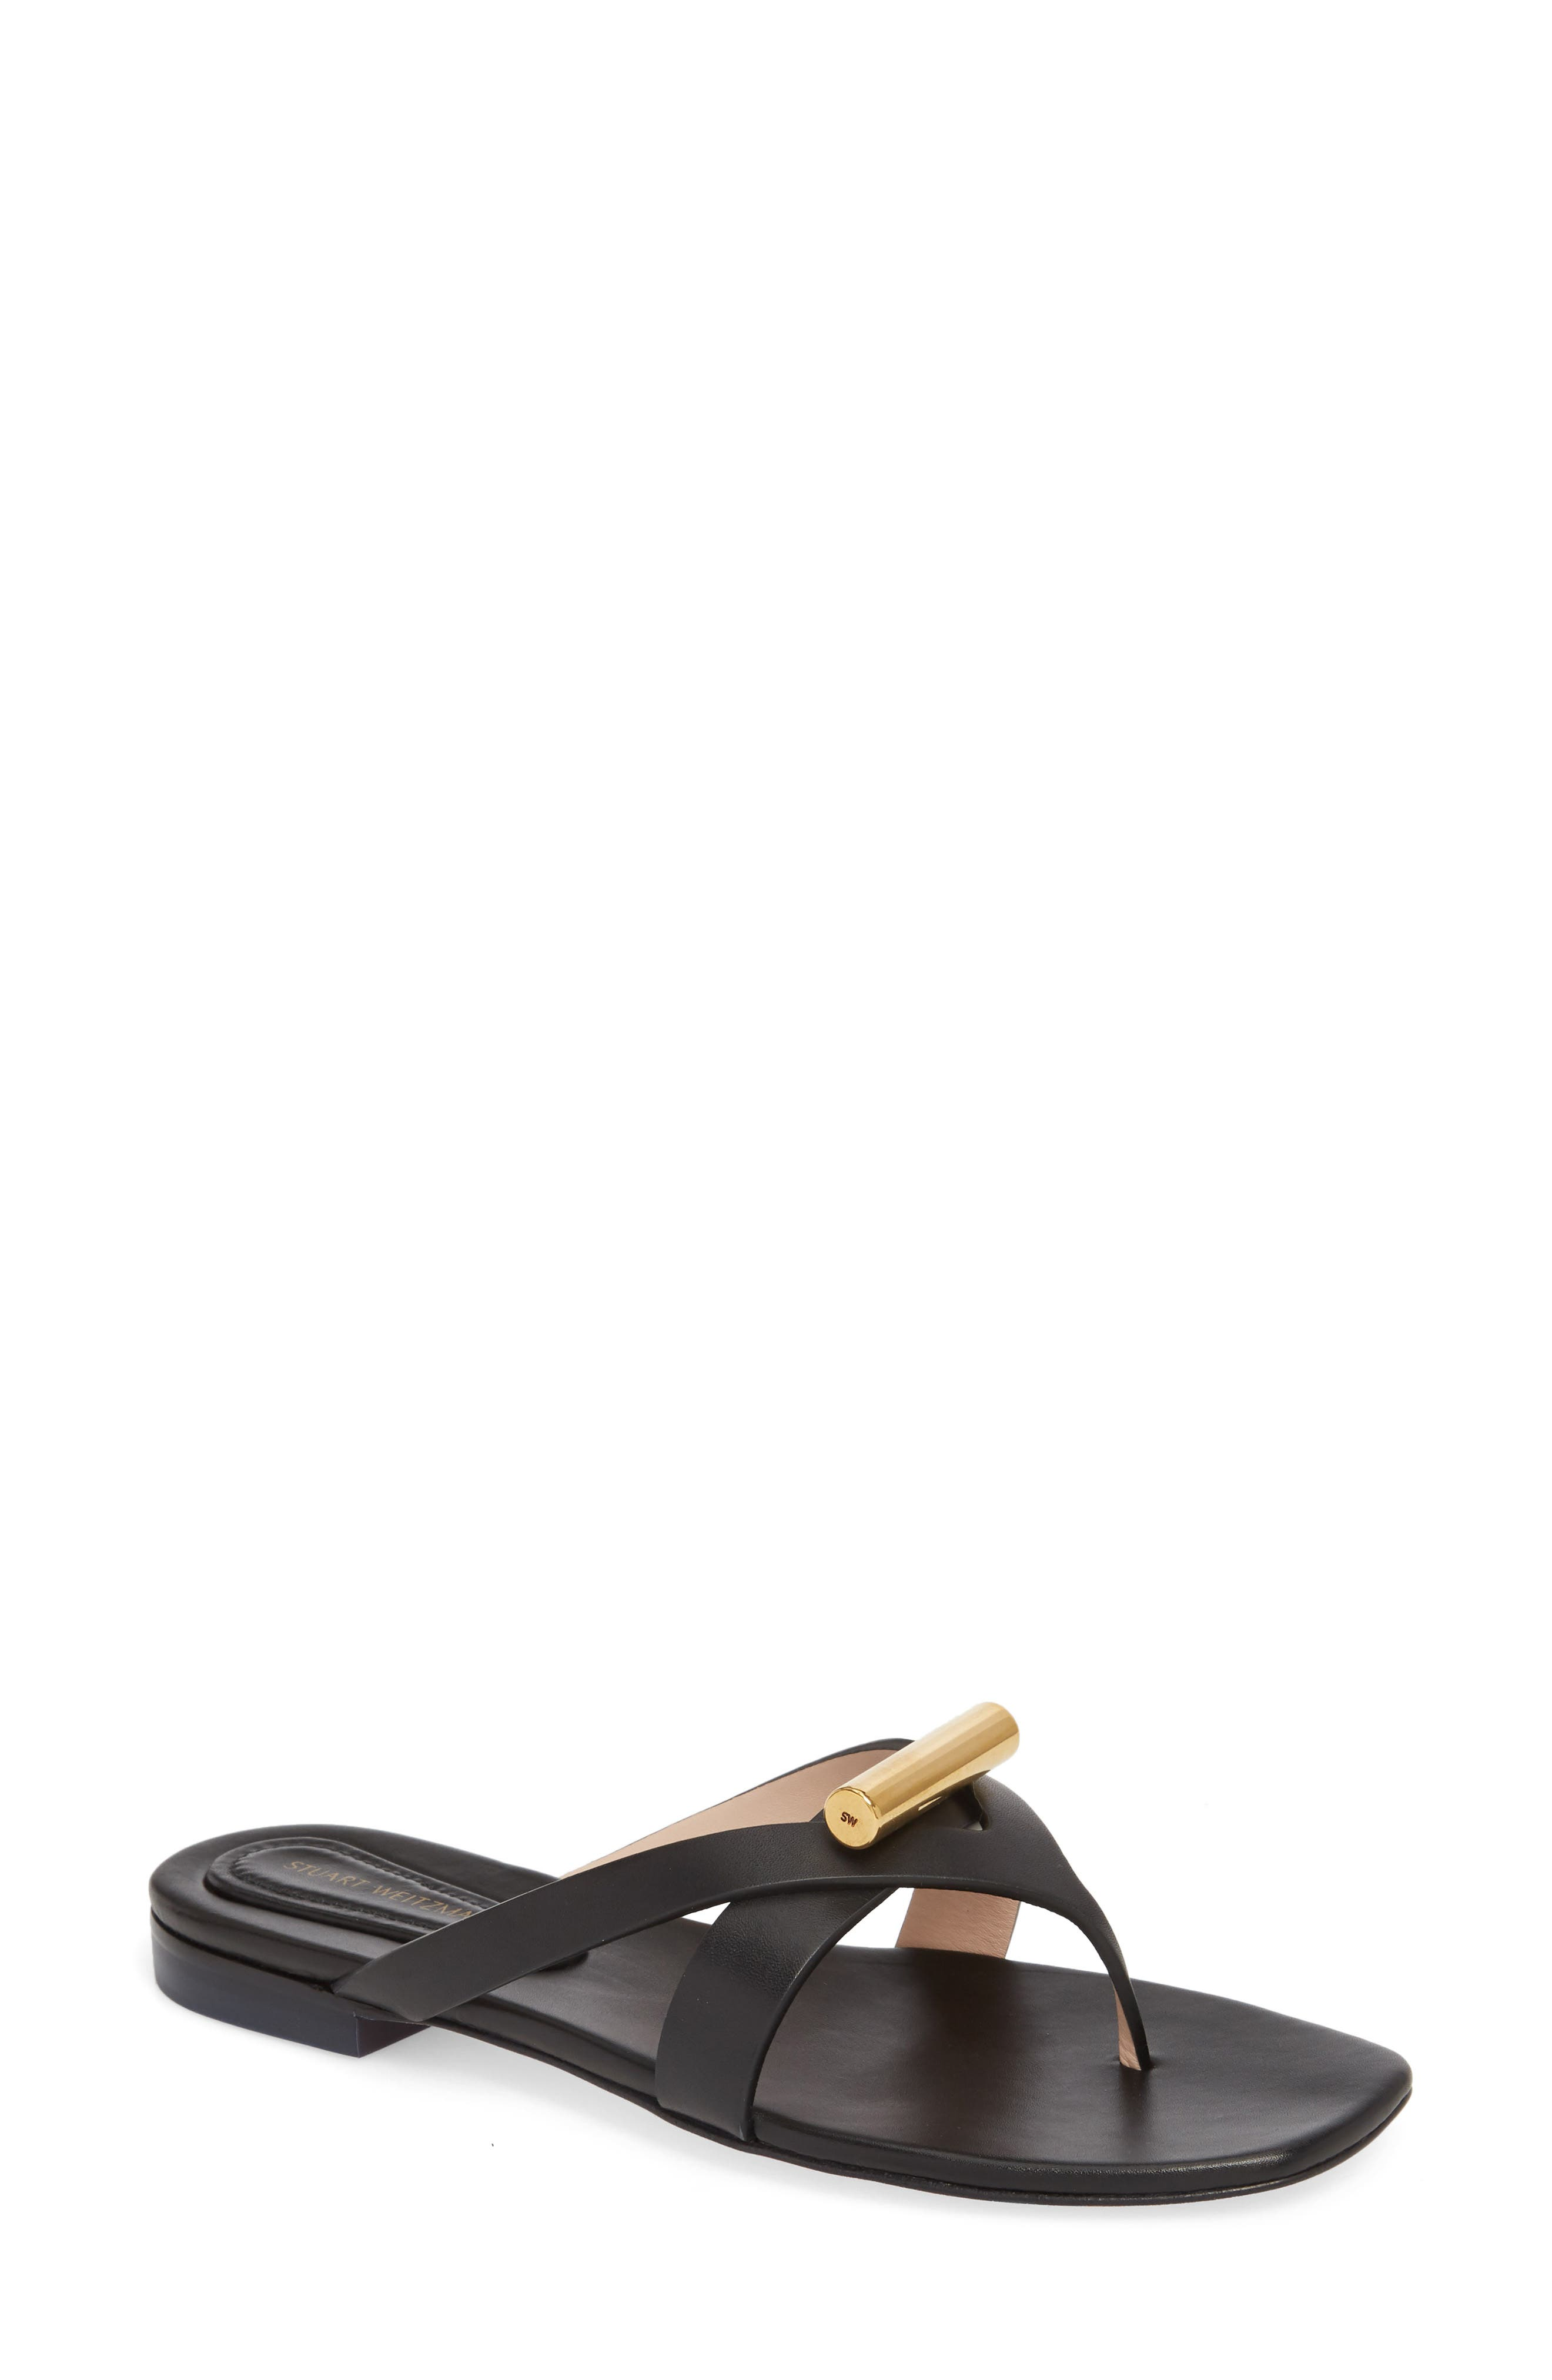 Arro Thong Sandal,                             Main thumbnail 1, color,                             Pitch Black Dexter